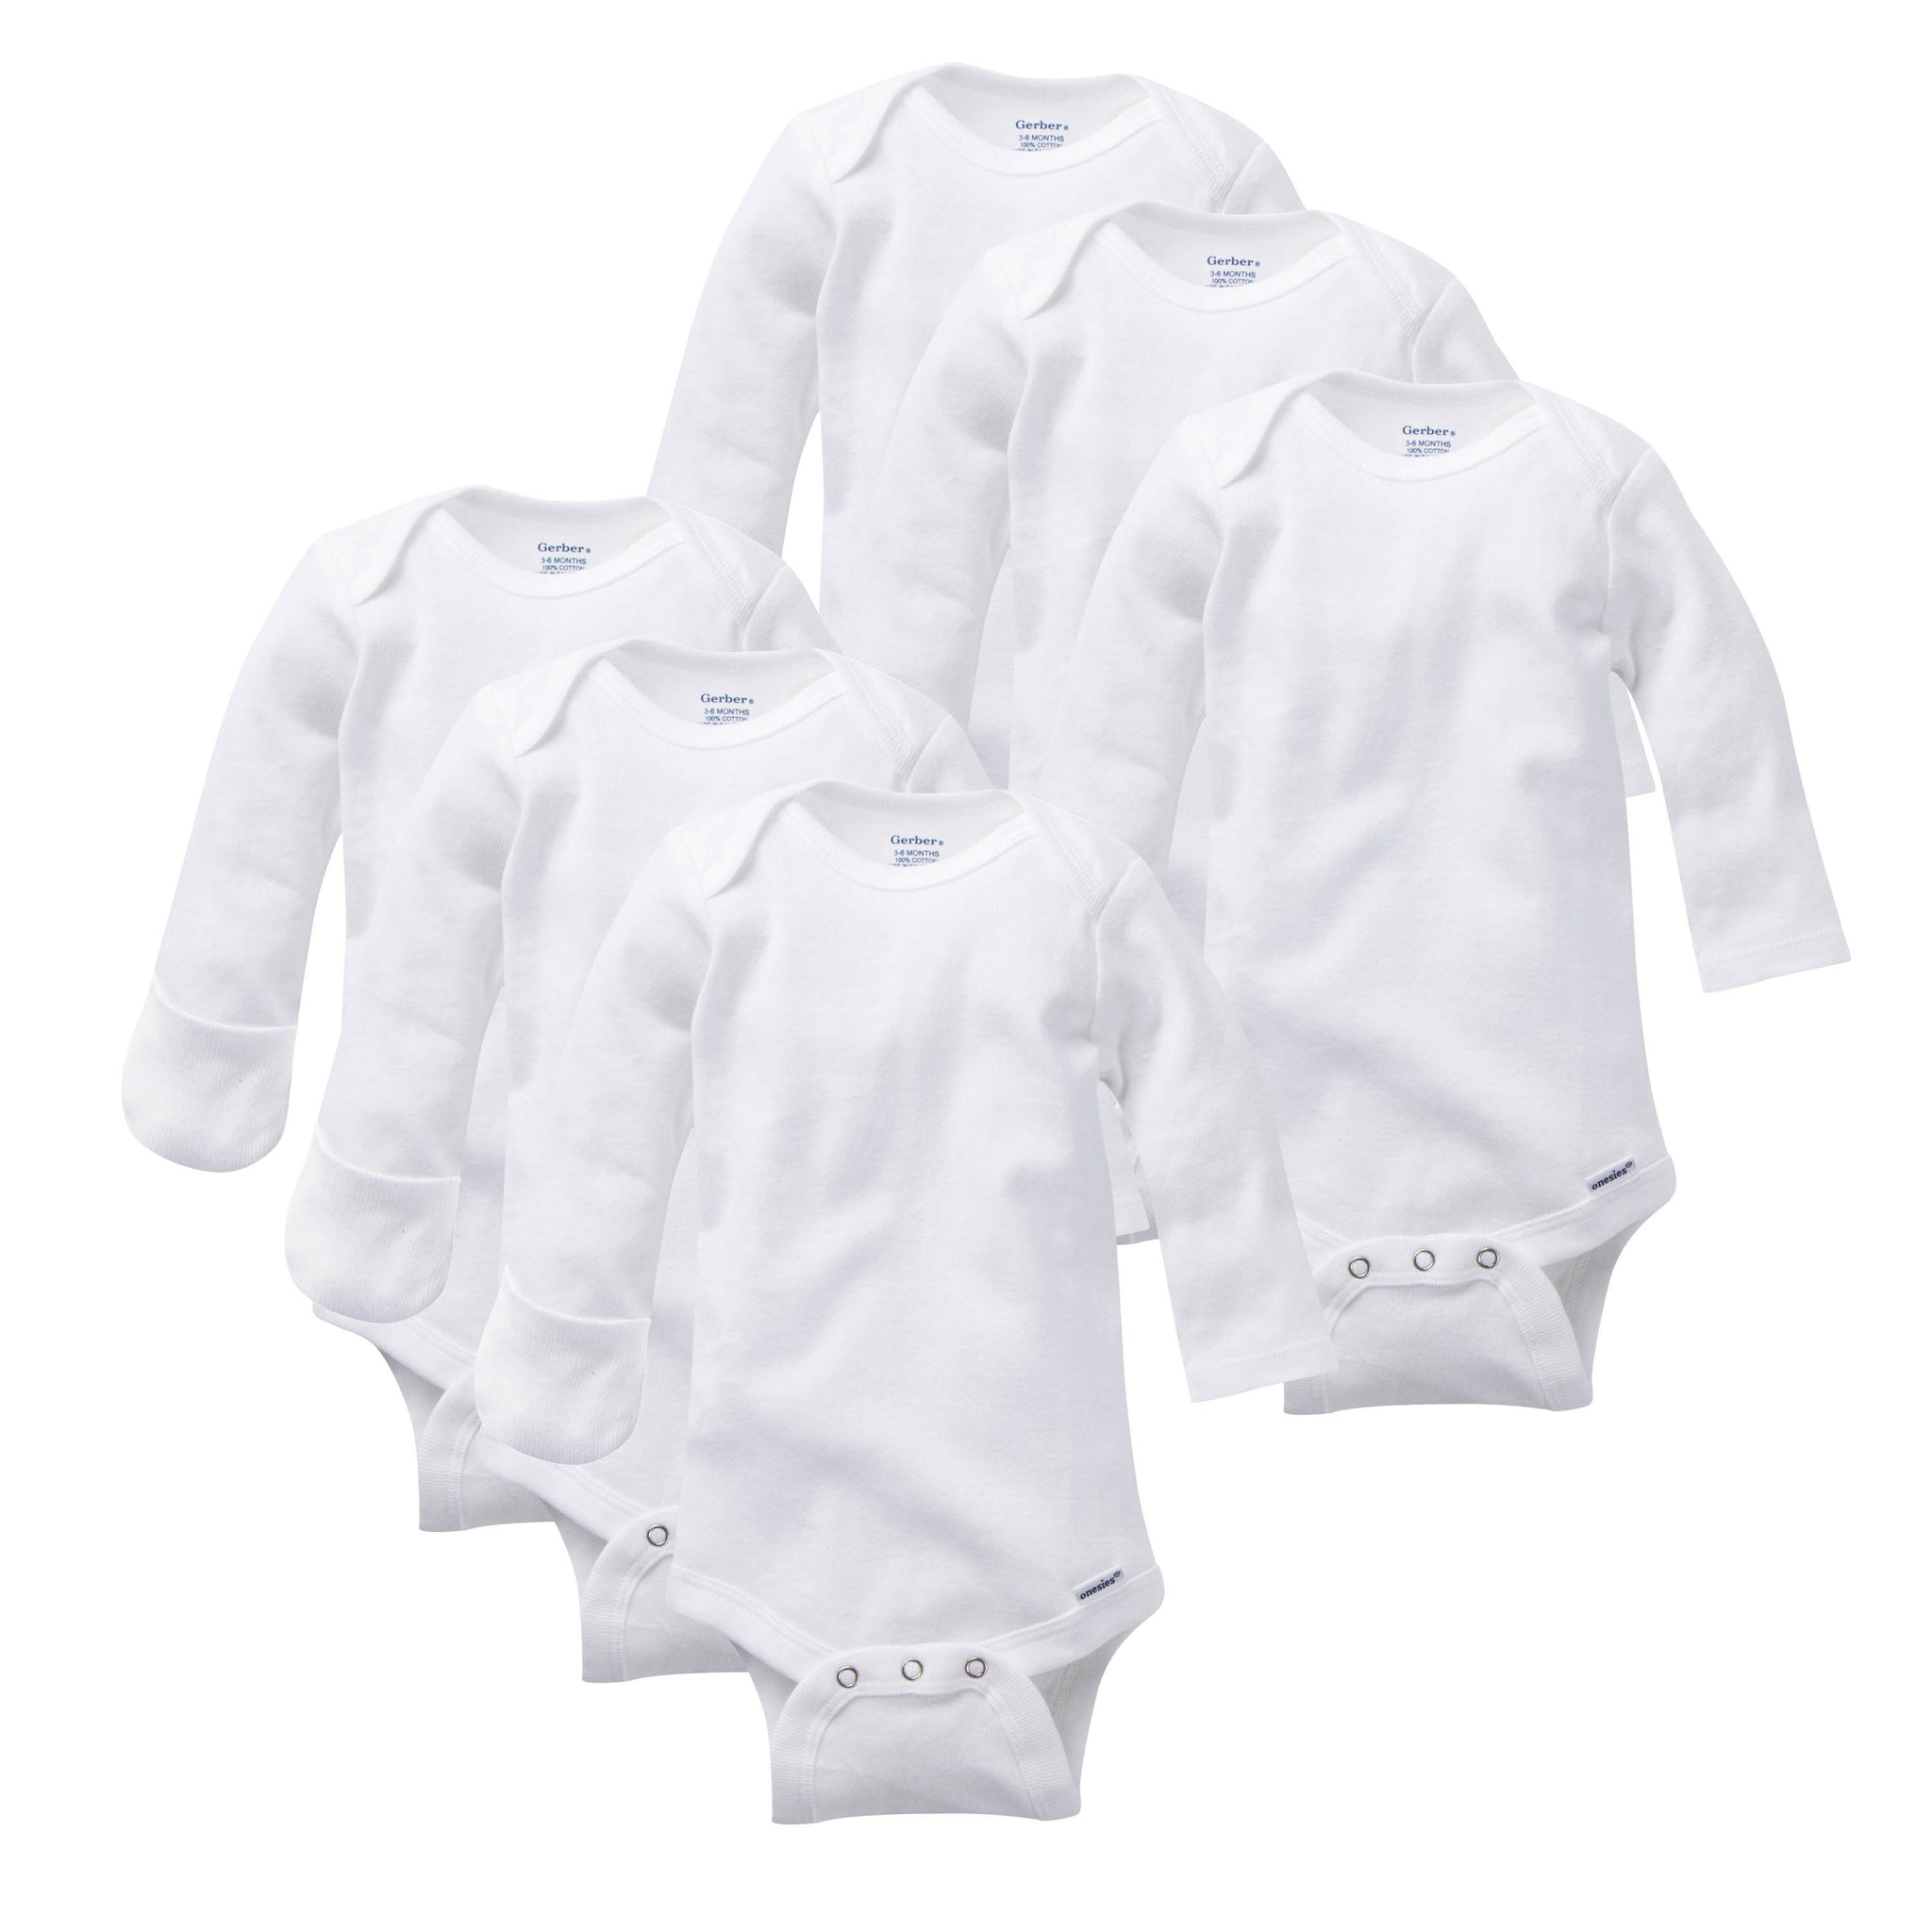 6-Pack White Long-Sleeve Mitten-Cuff Onesies Bodysuits